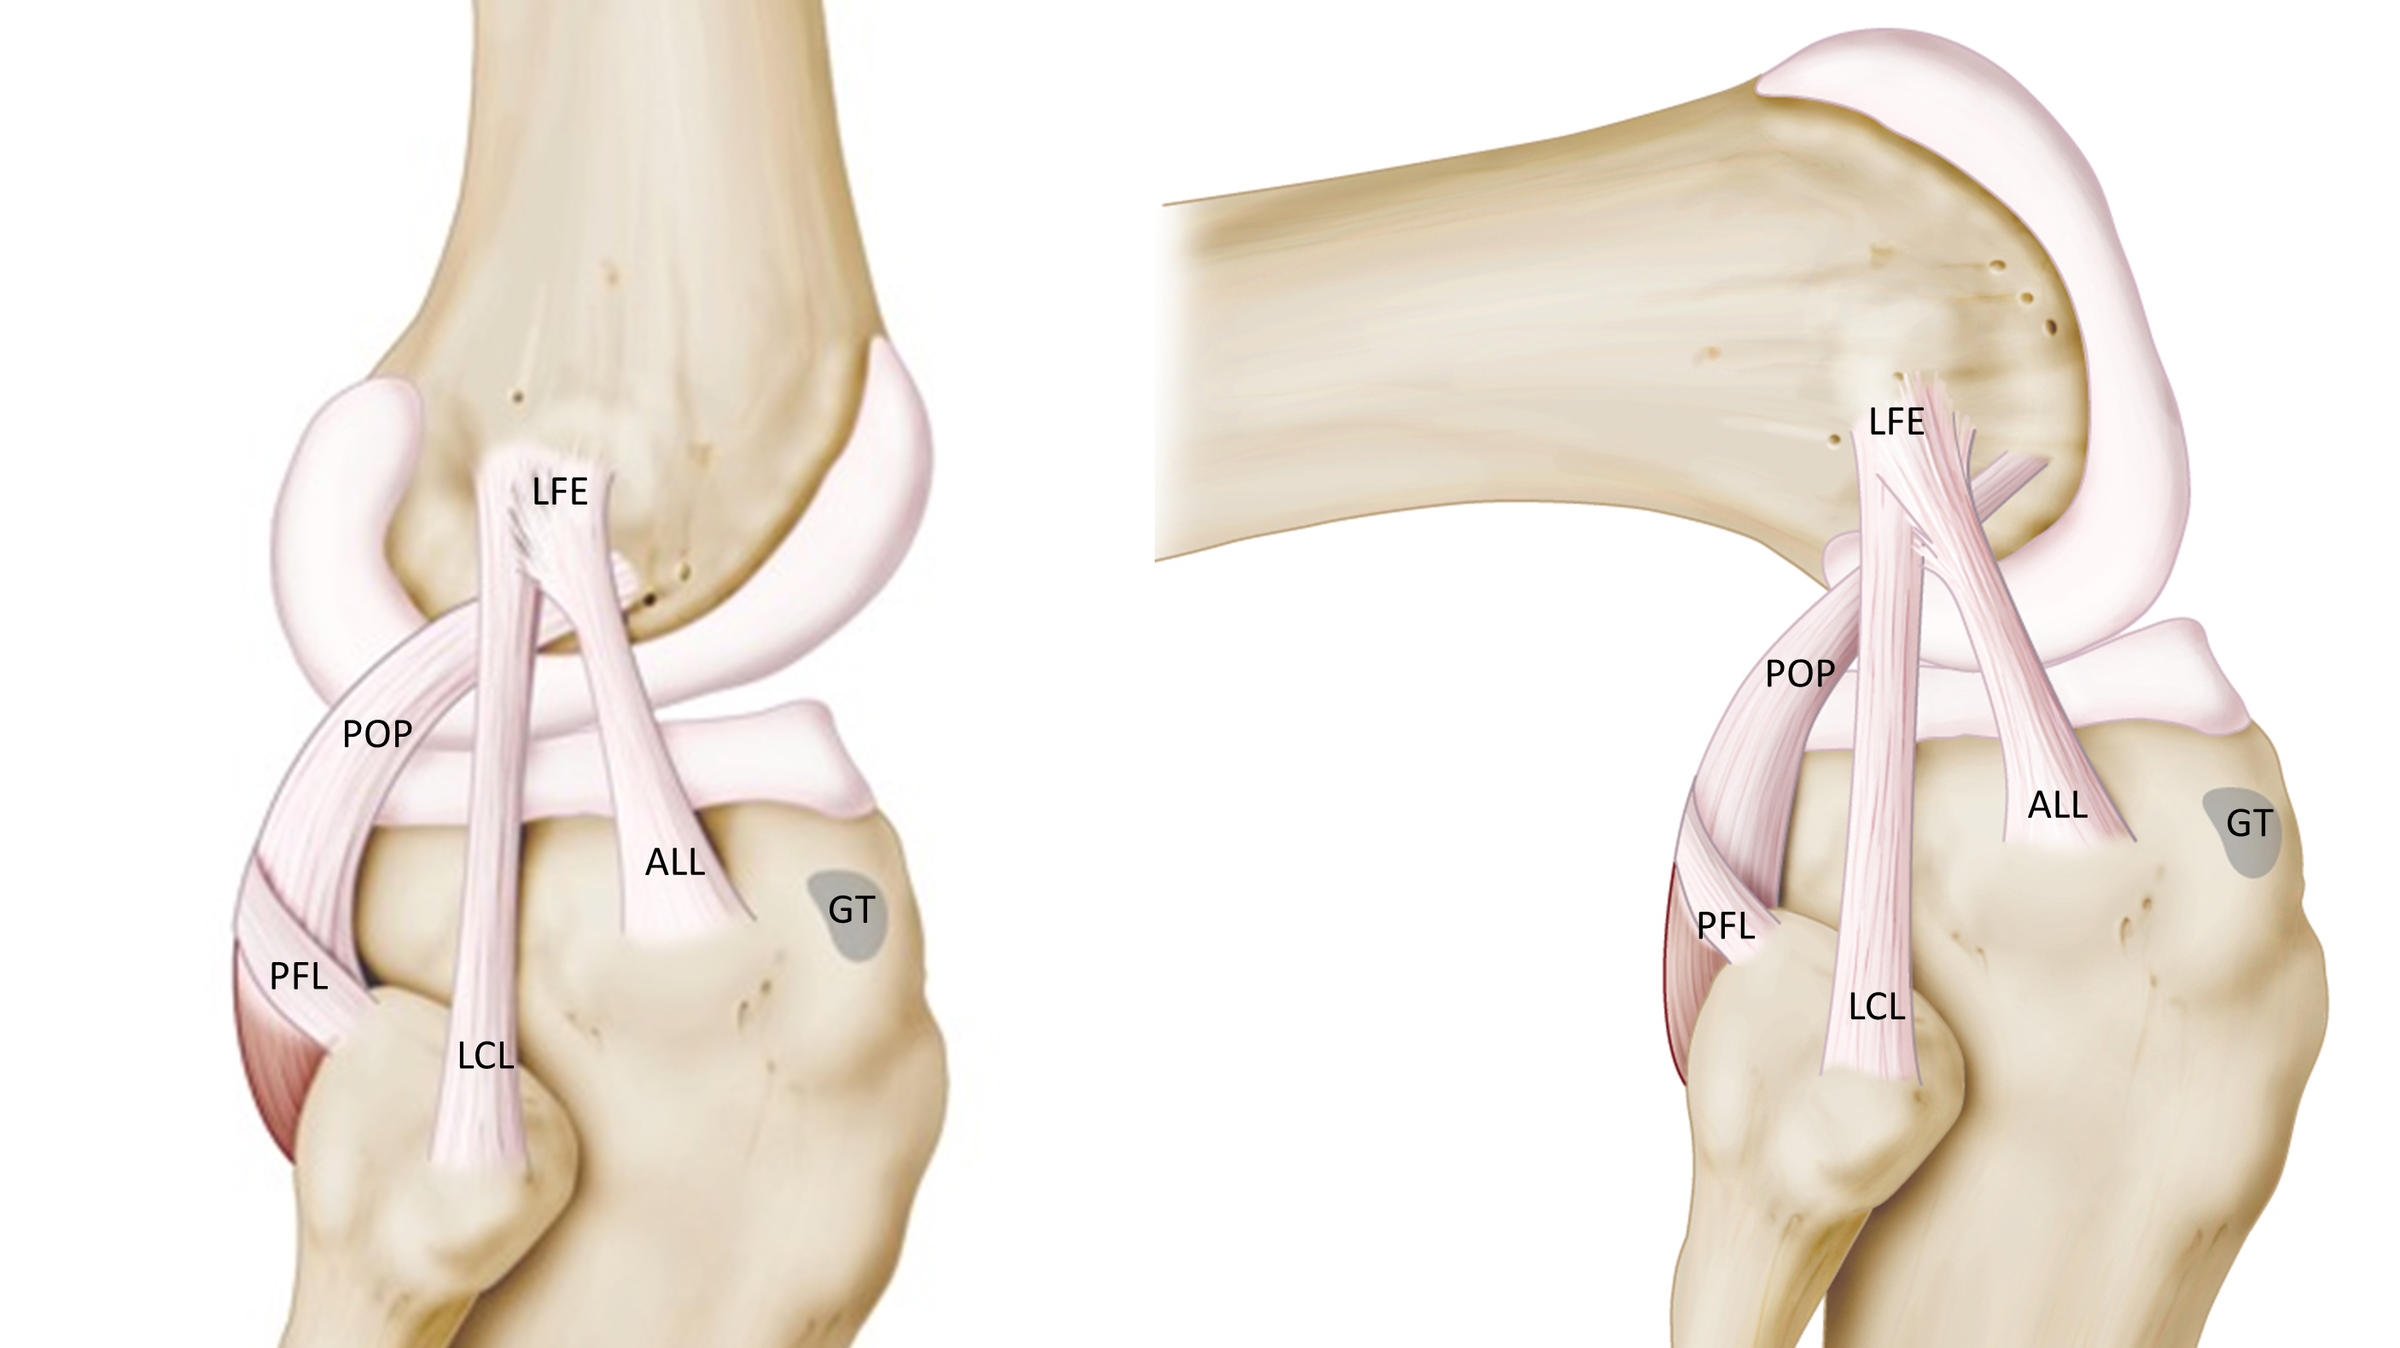 Anterolateral Ligament Knee Anatomy Diagram - Search For Wiring ...